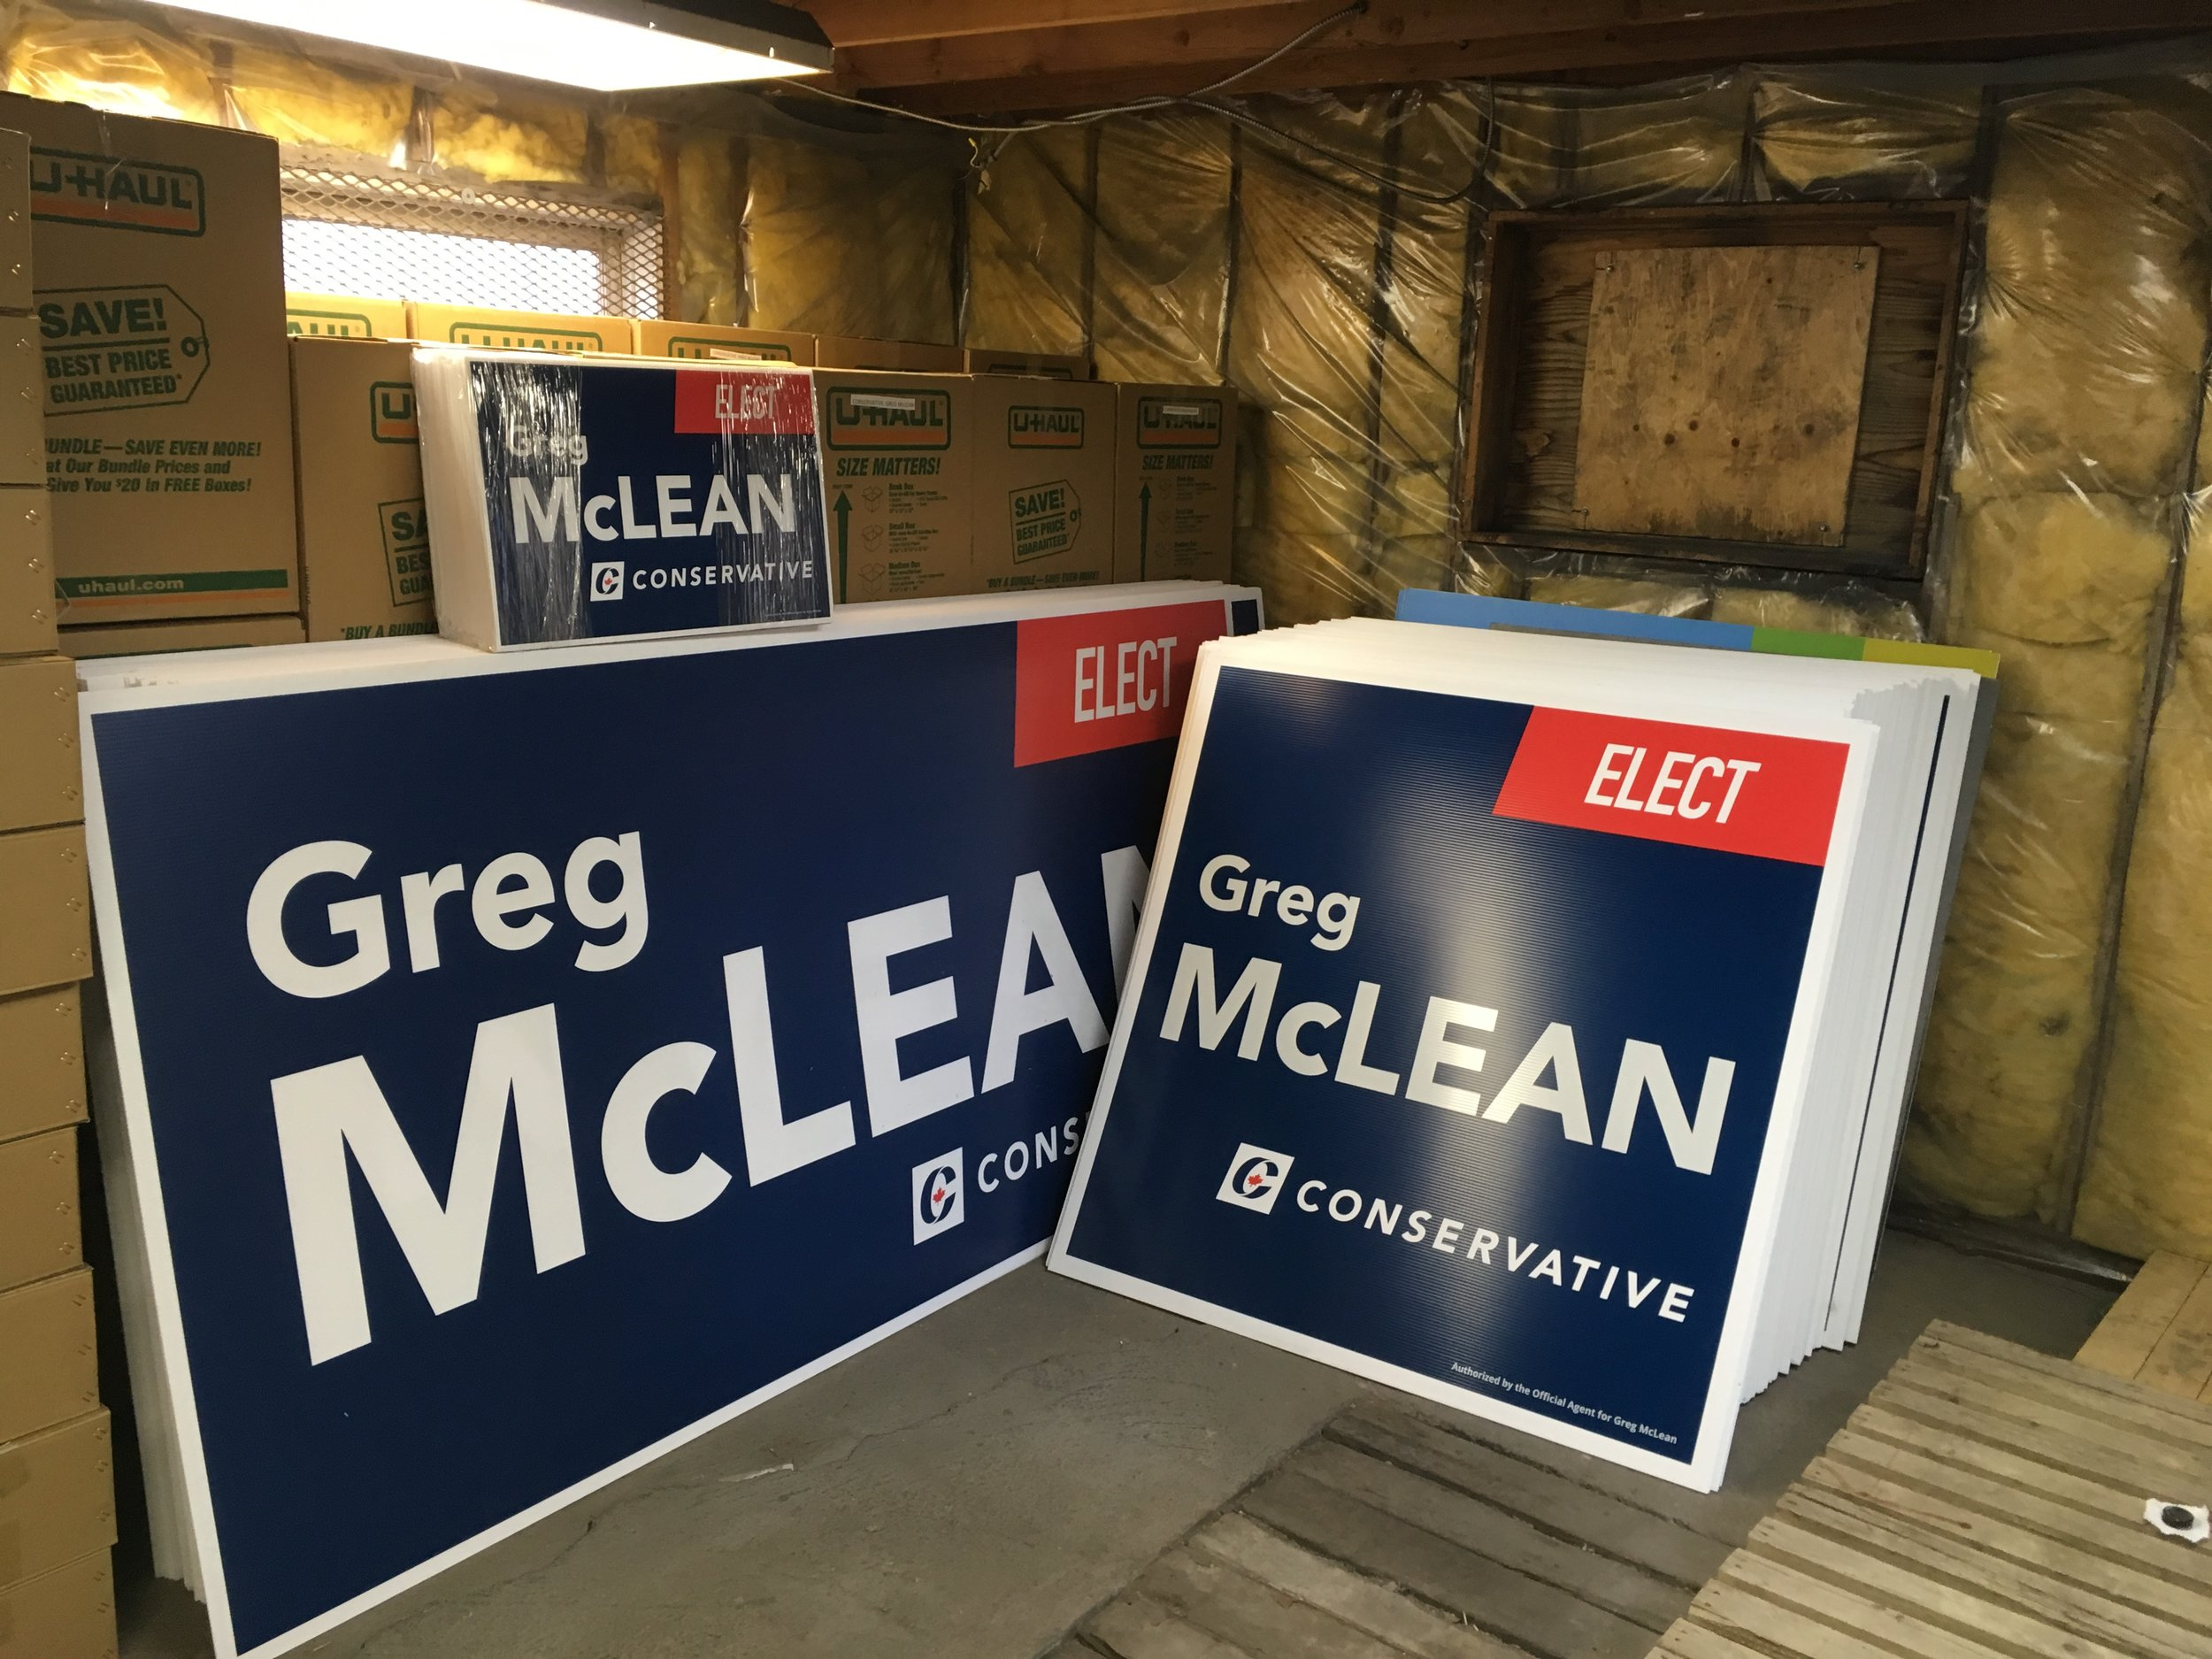 It's starting to get real. Here's our sign order delivered today and in our HQ basement, ready for assembly and delivery in the next couple of weeks.